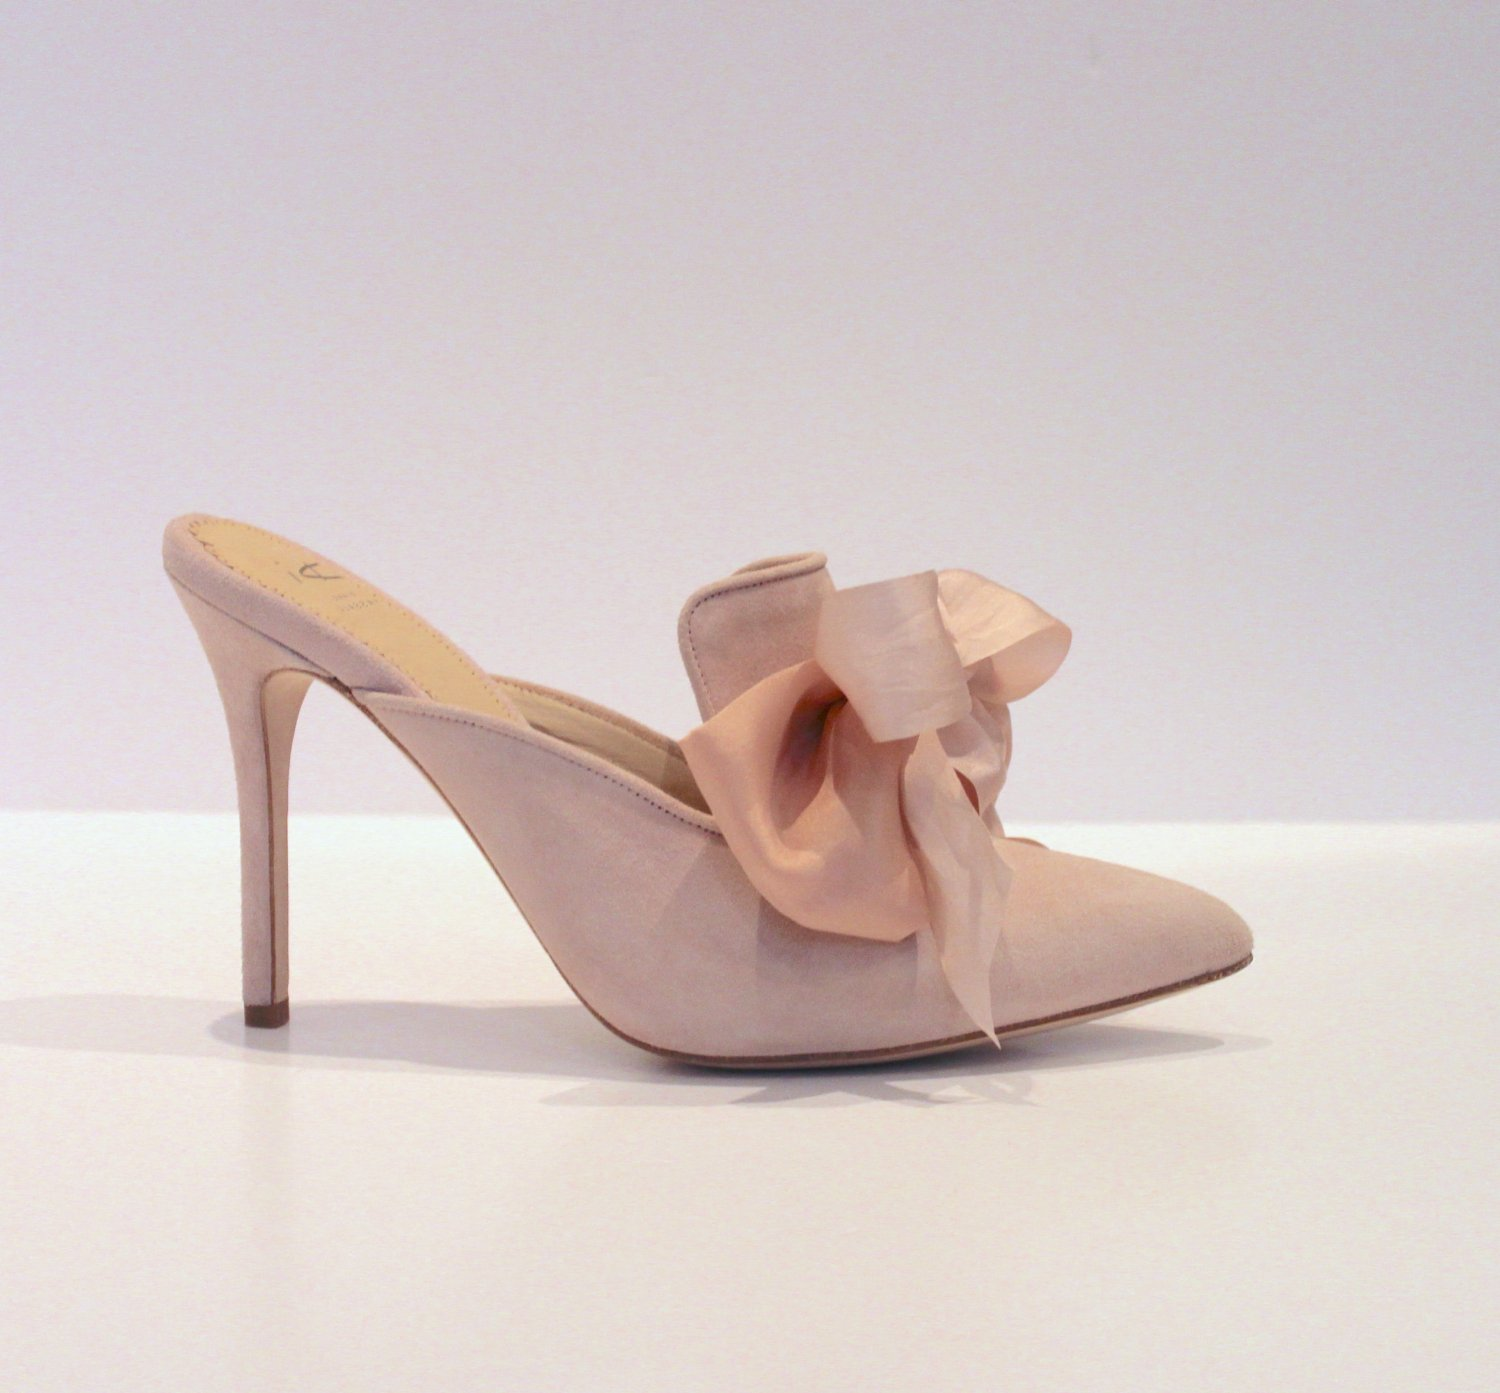 Blush suede mule with large bows